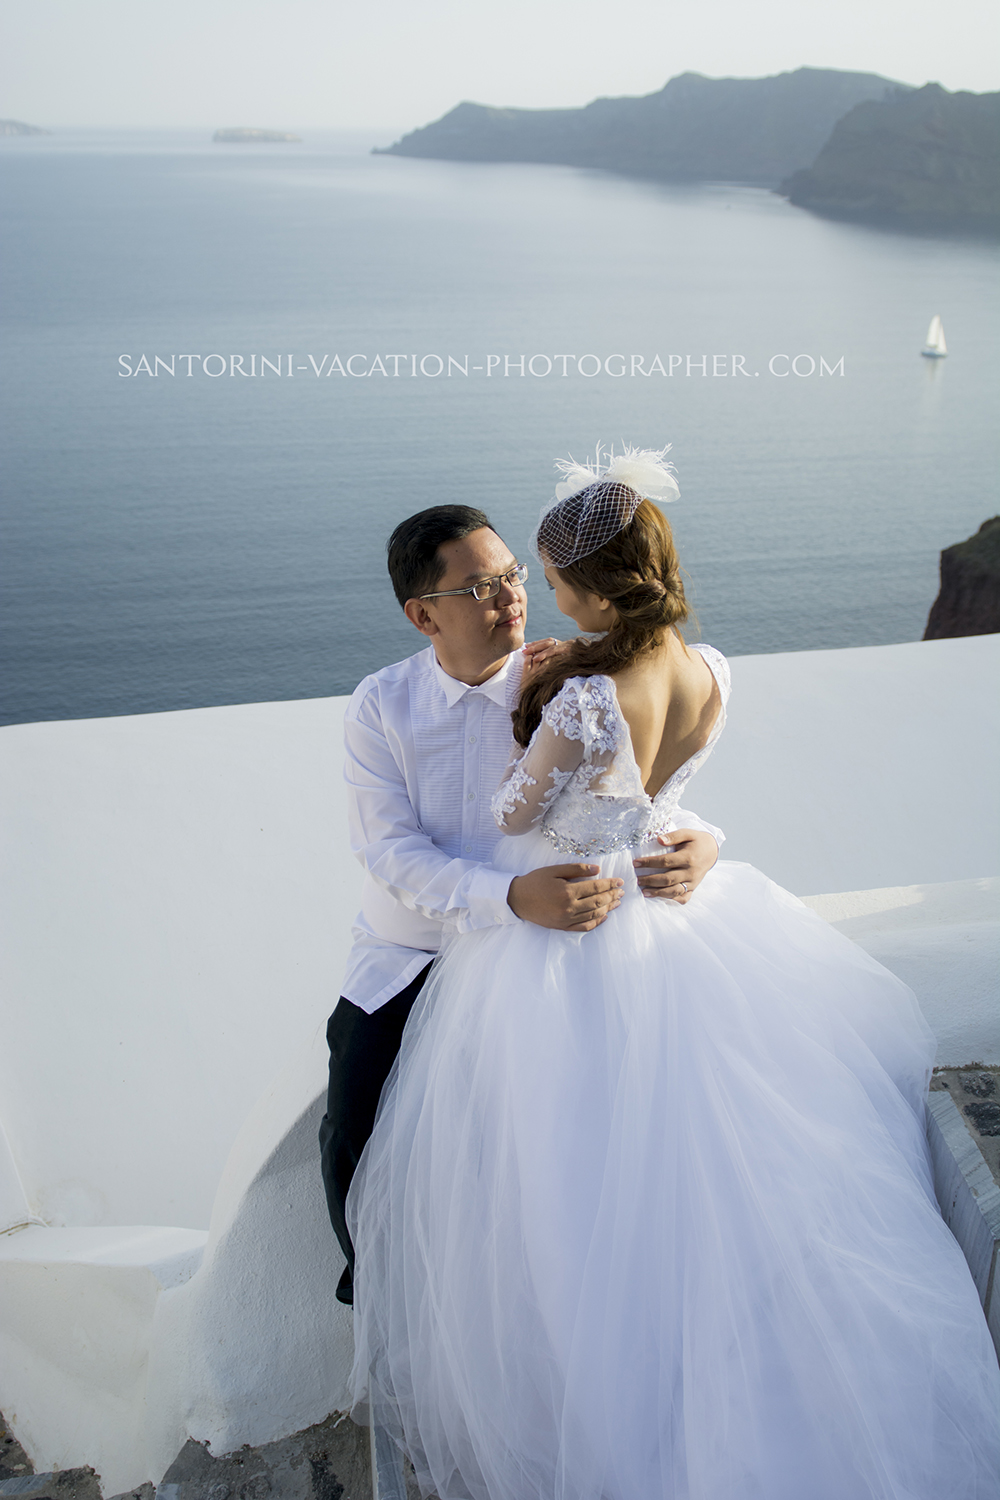 Wedding dress. Santorini getaway.